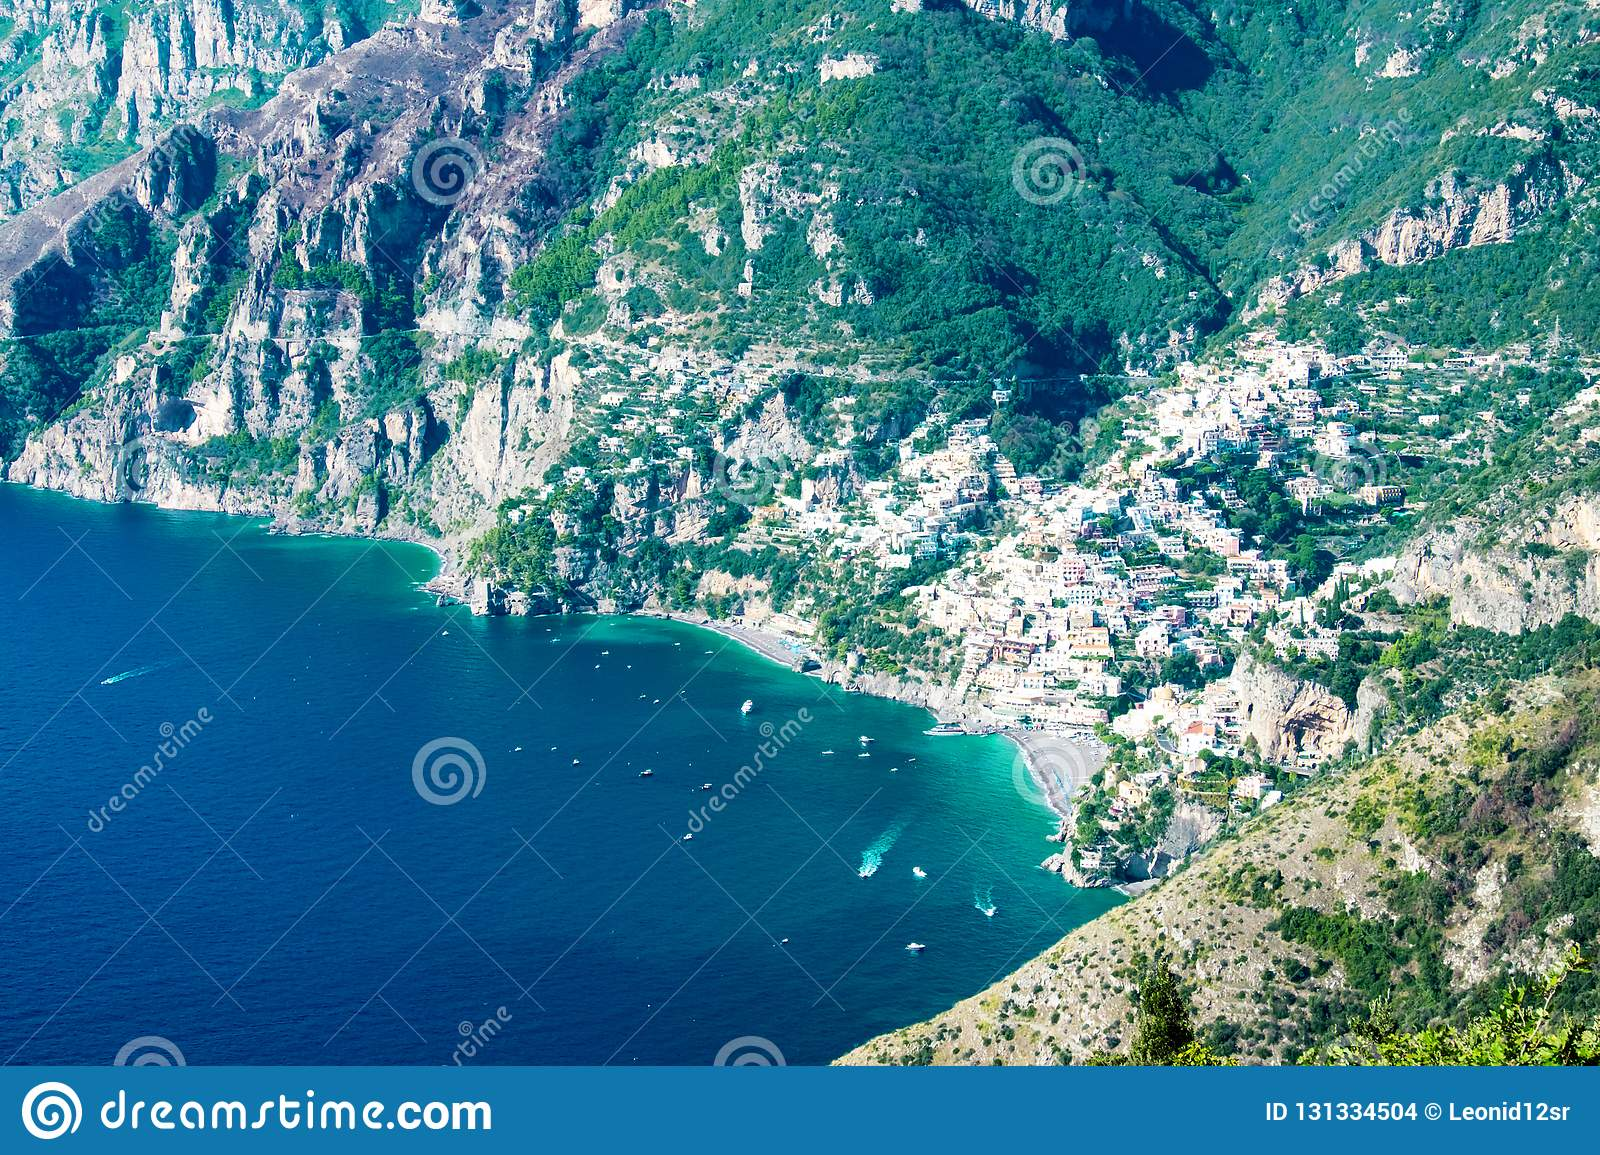 Positano With The Beach And Houses Located On The Rock